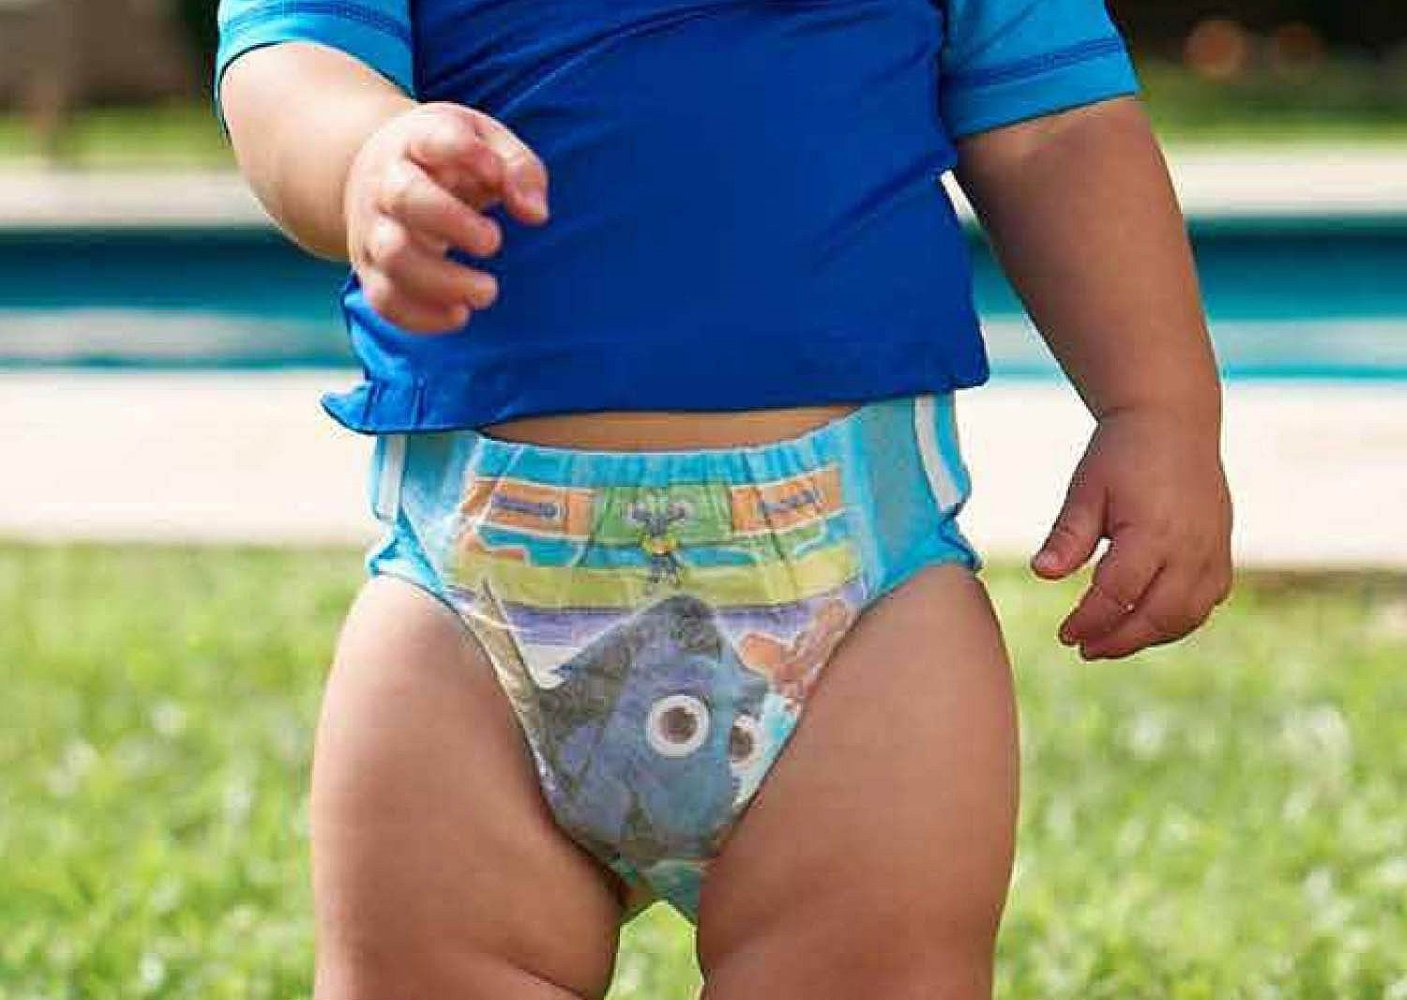 Huggies Little Swimmers Disposable Swimpants Large - Bonus 56 Wipes Included! by Huggies (Image #6)